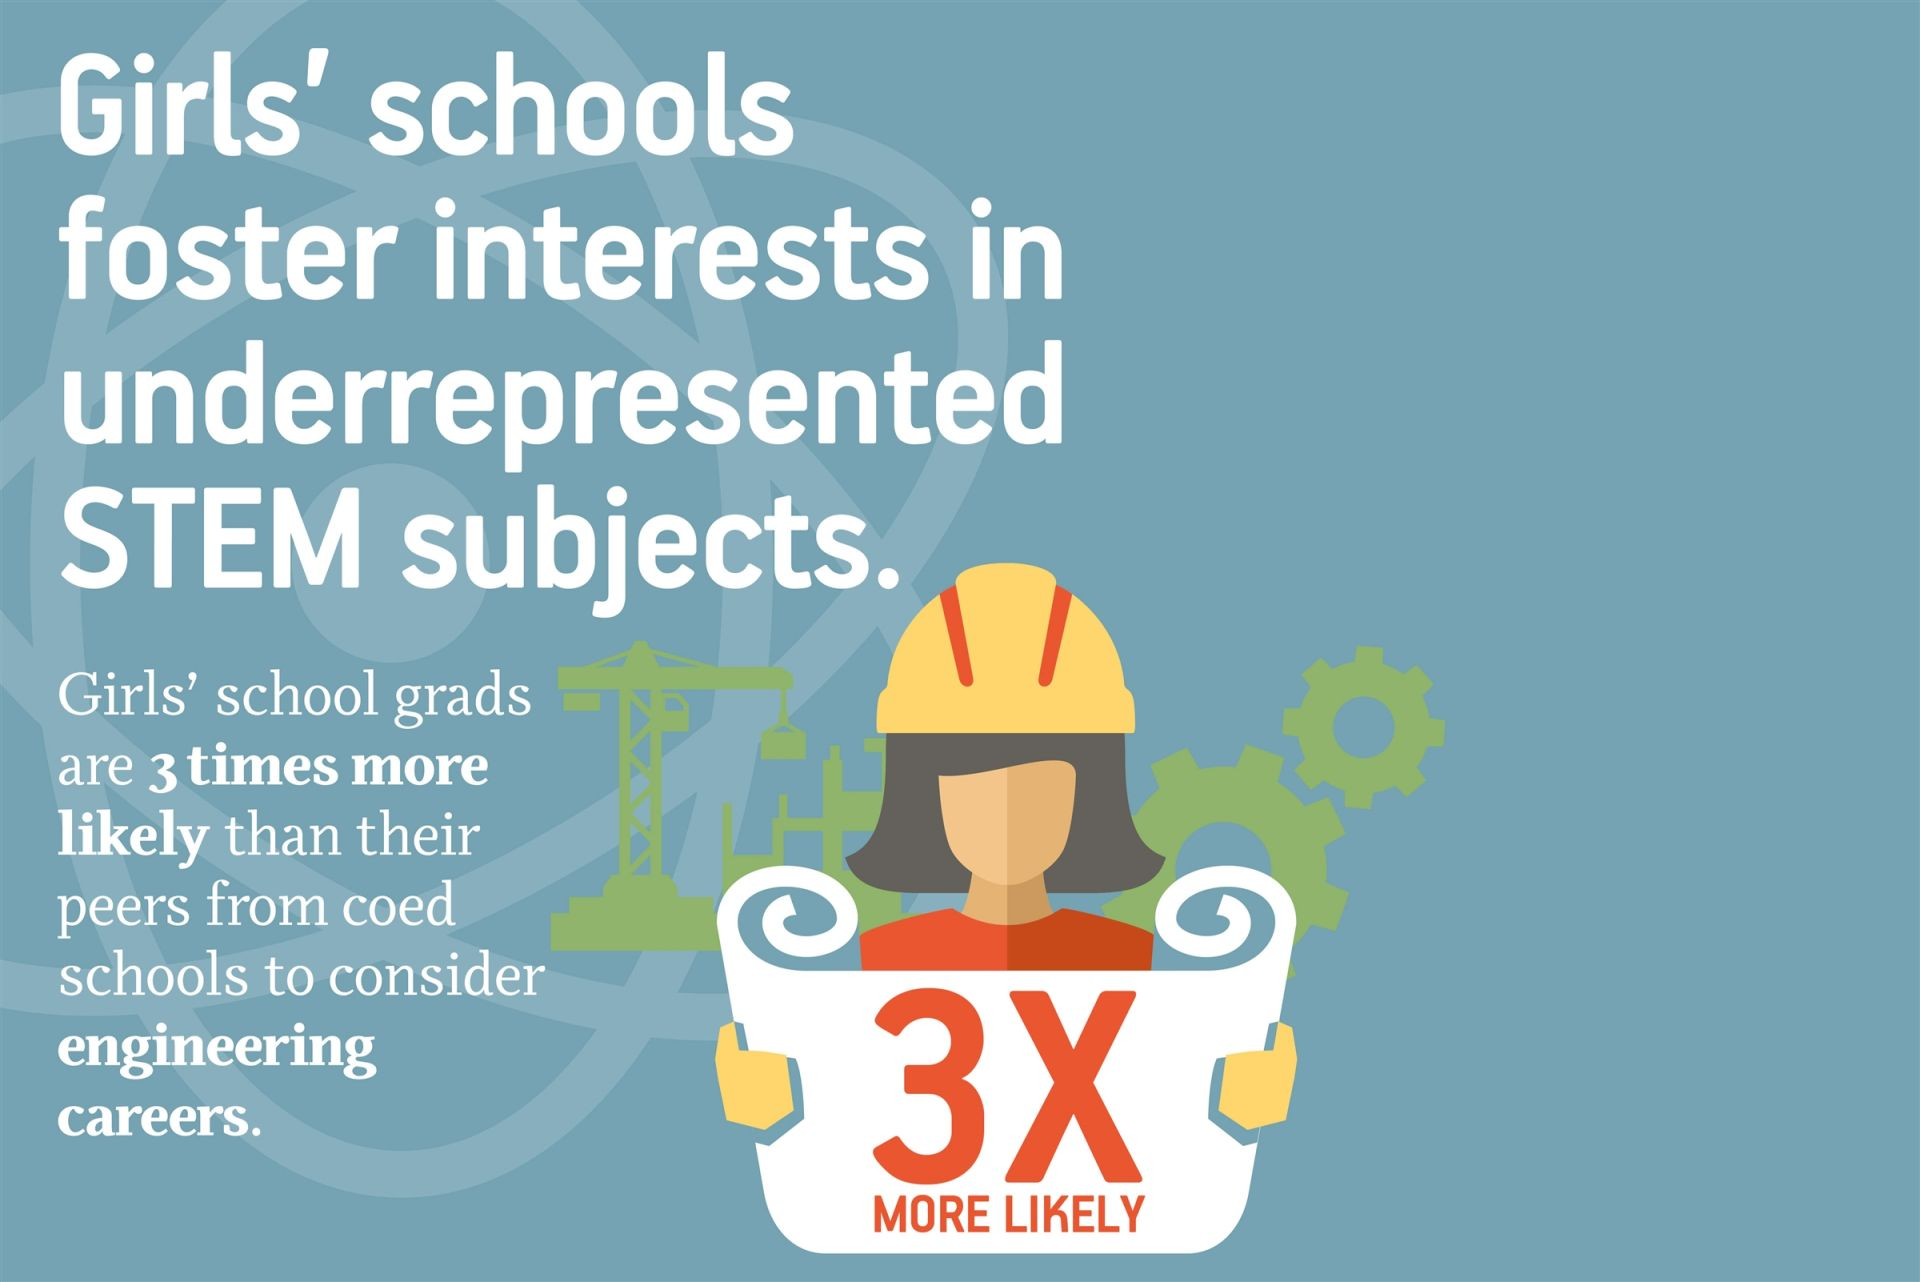 Girls' school grads are 3 times more likely than their peers from coed schools to consider engineering careers.